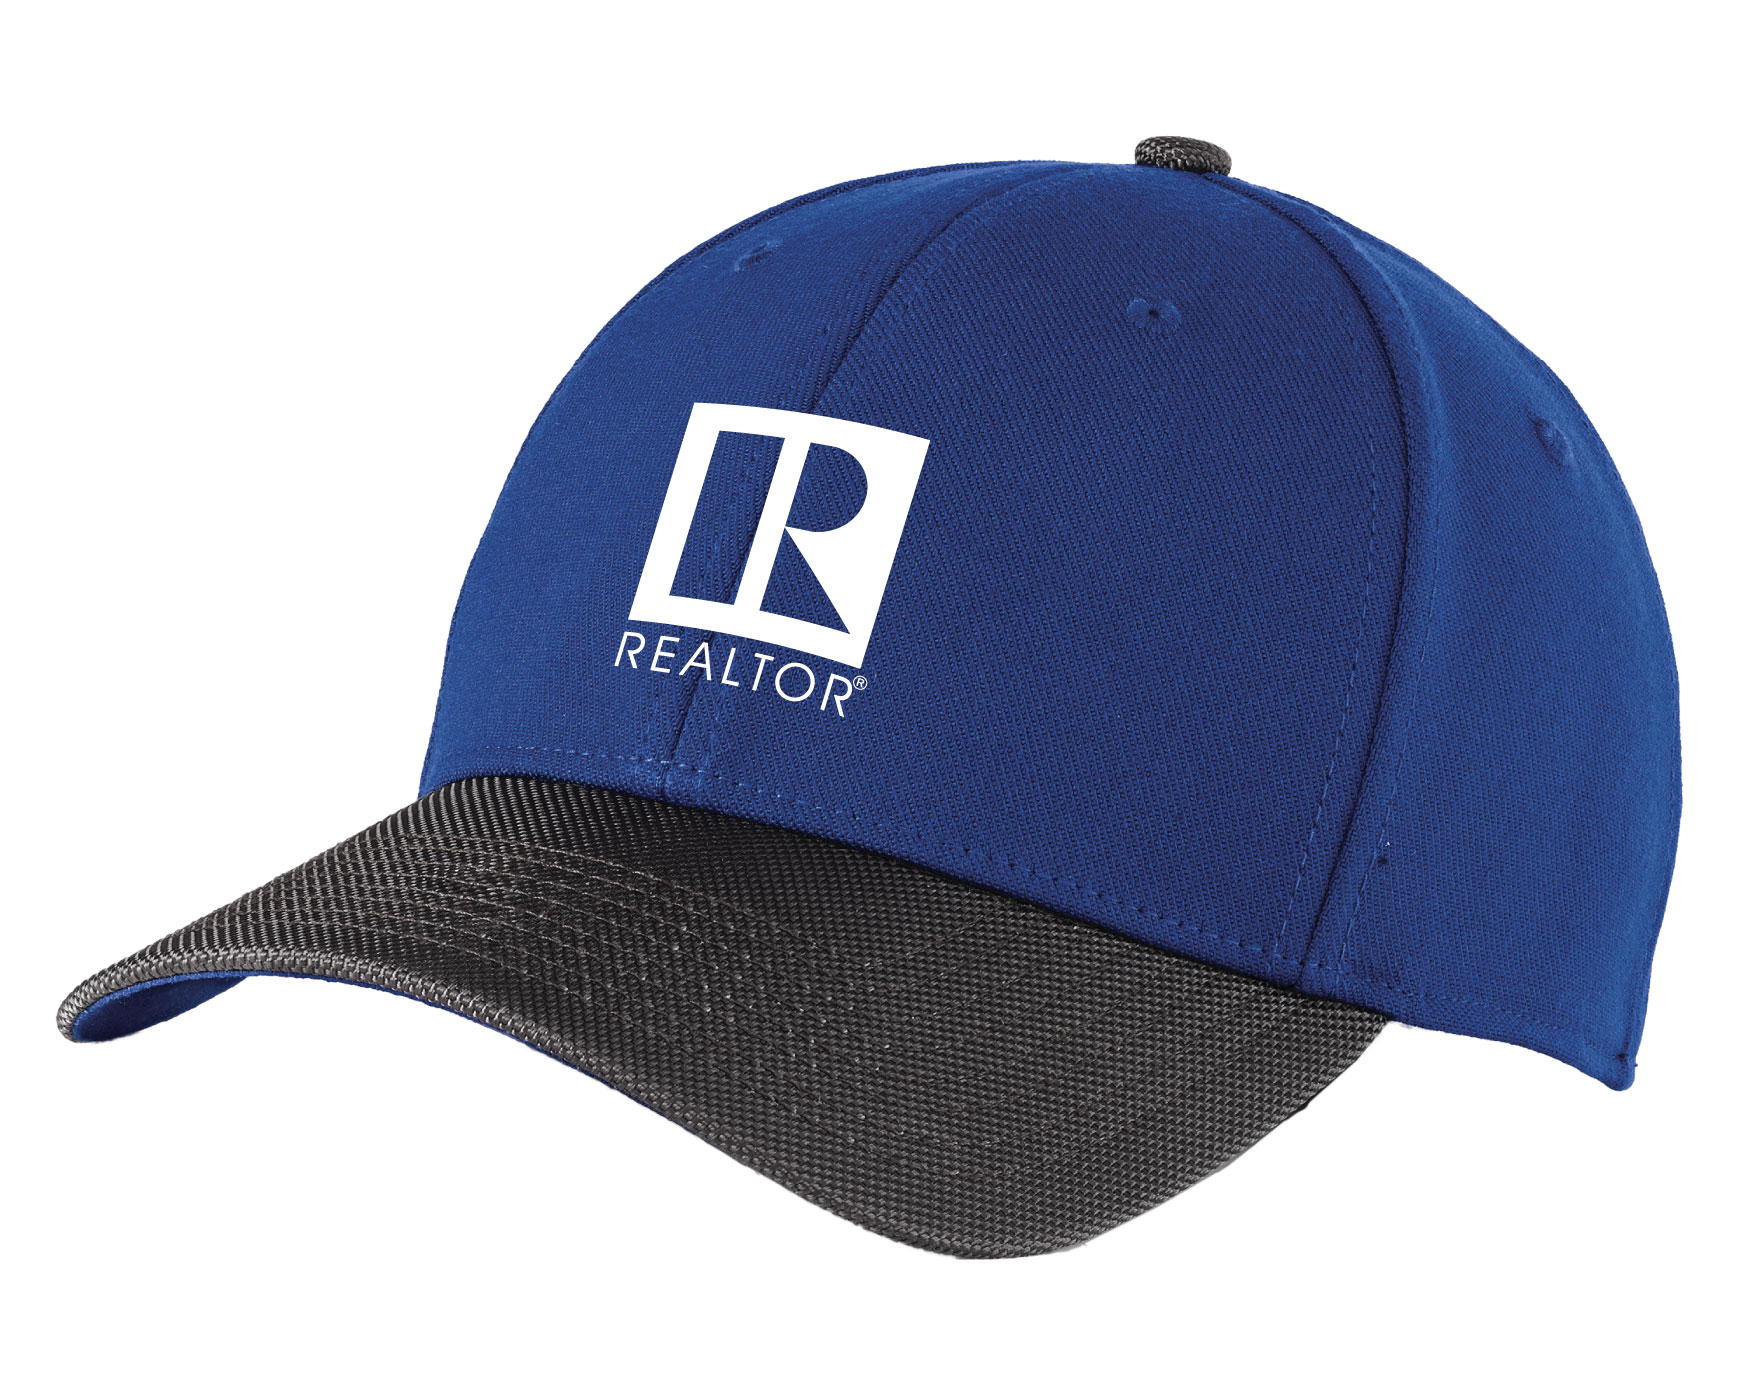 New Era Ballistic Cap (RCG3814).